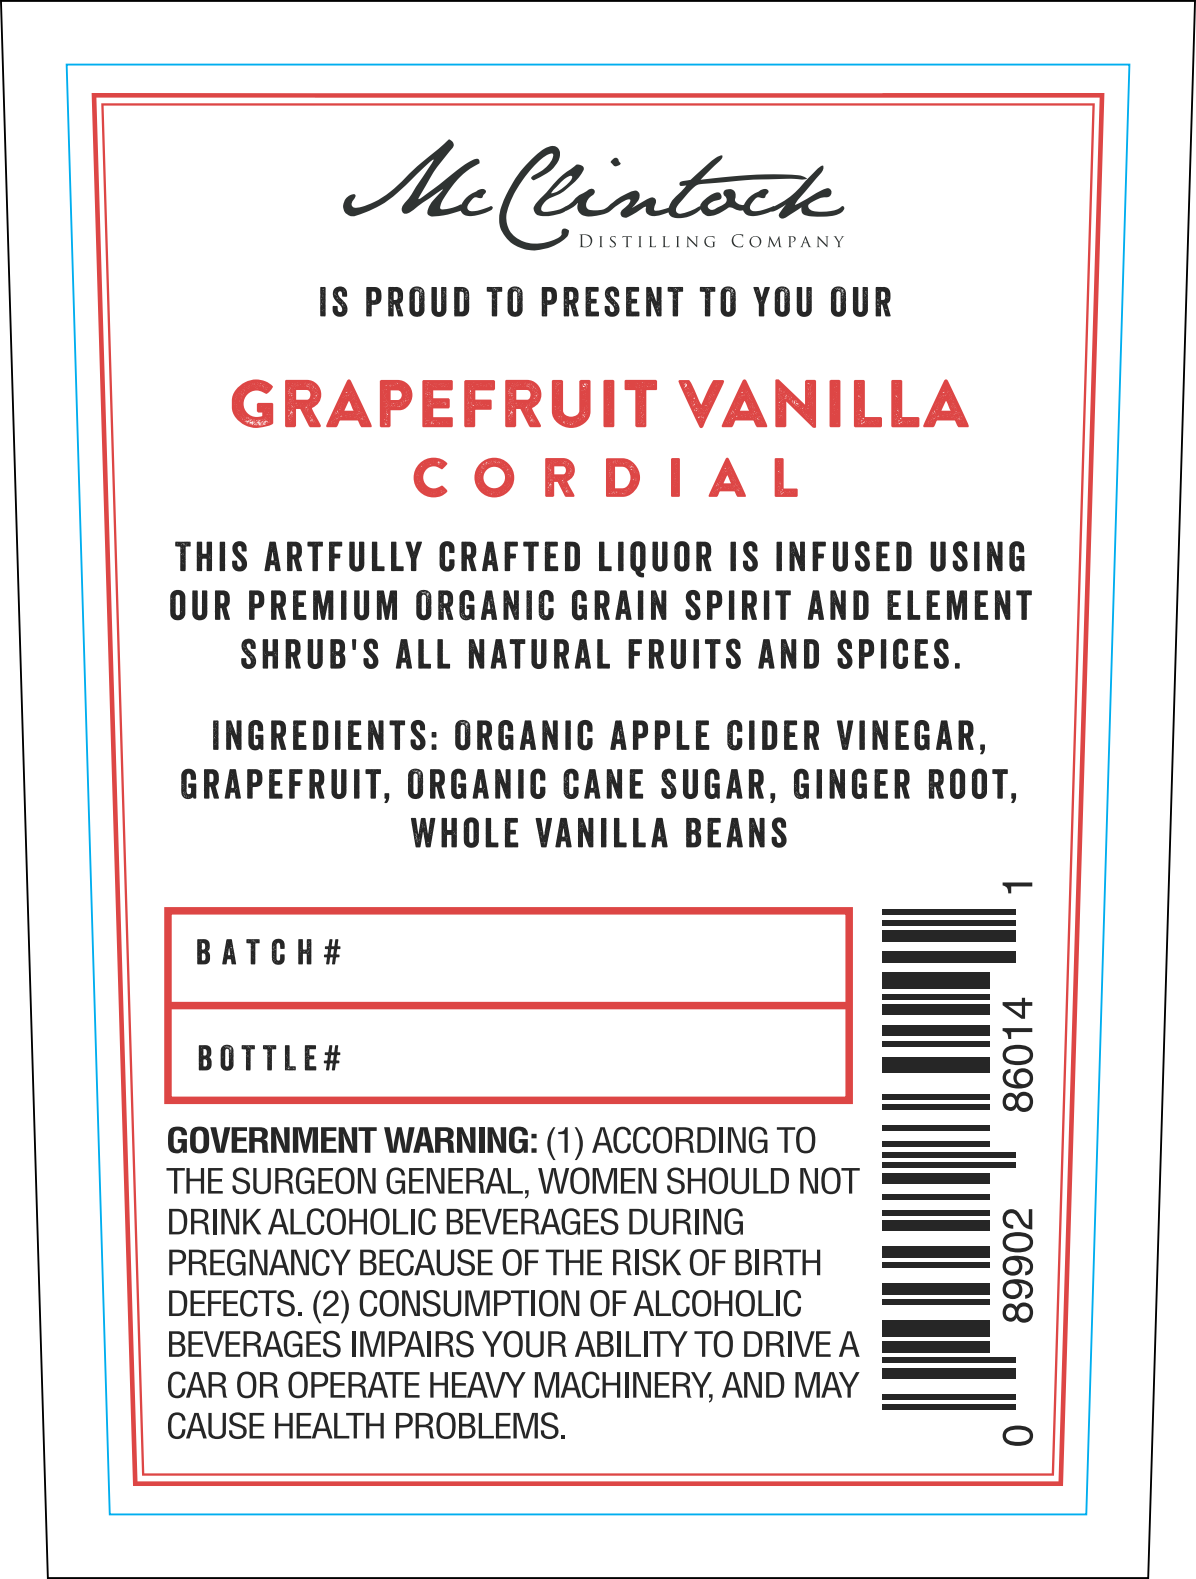 New Cordial (Grapefruit Vanilla)